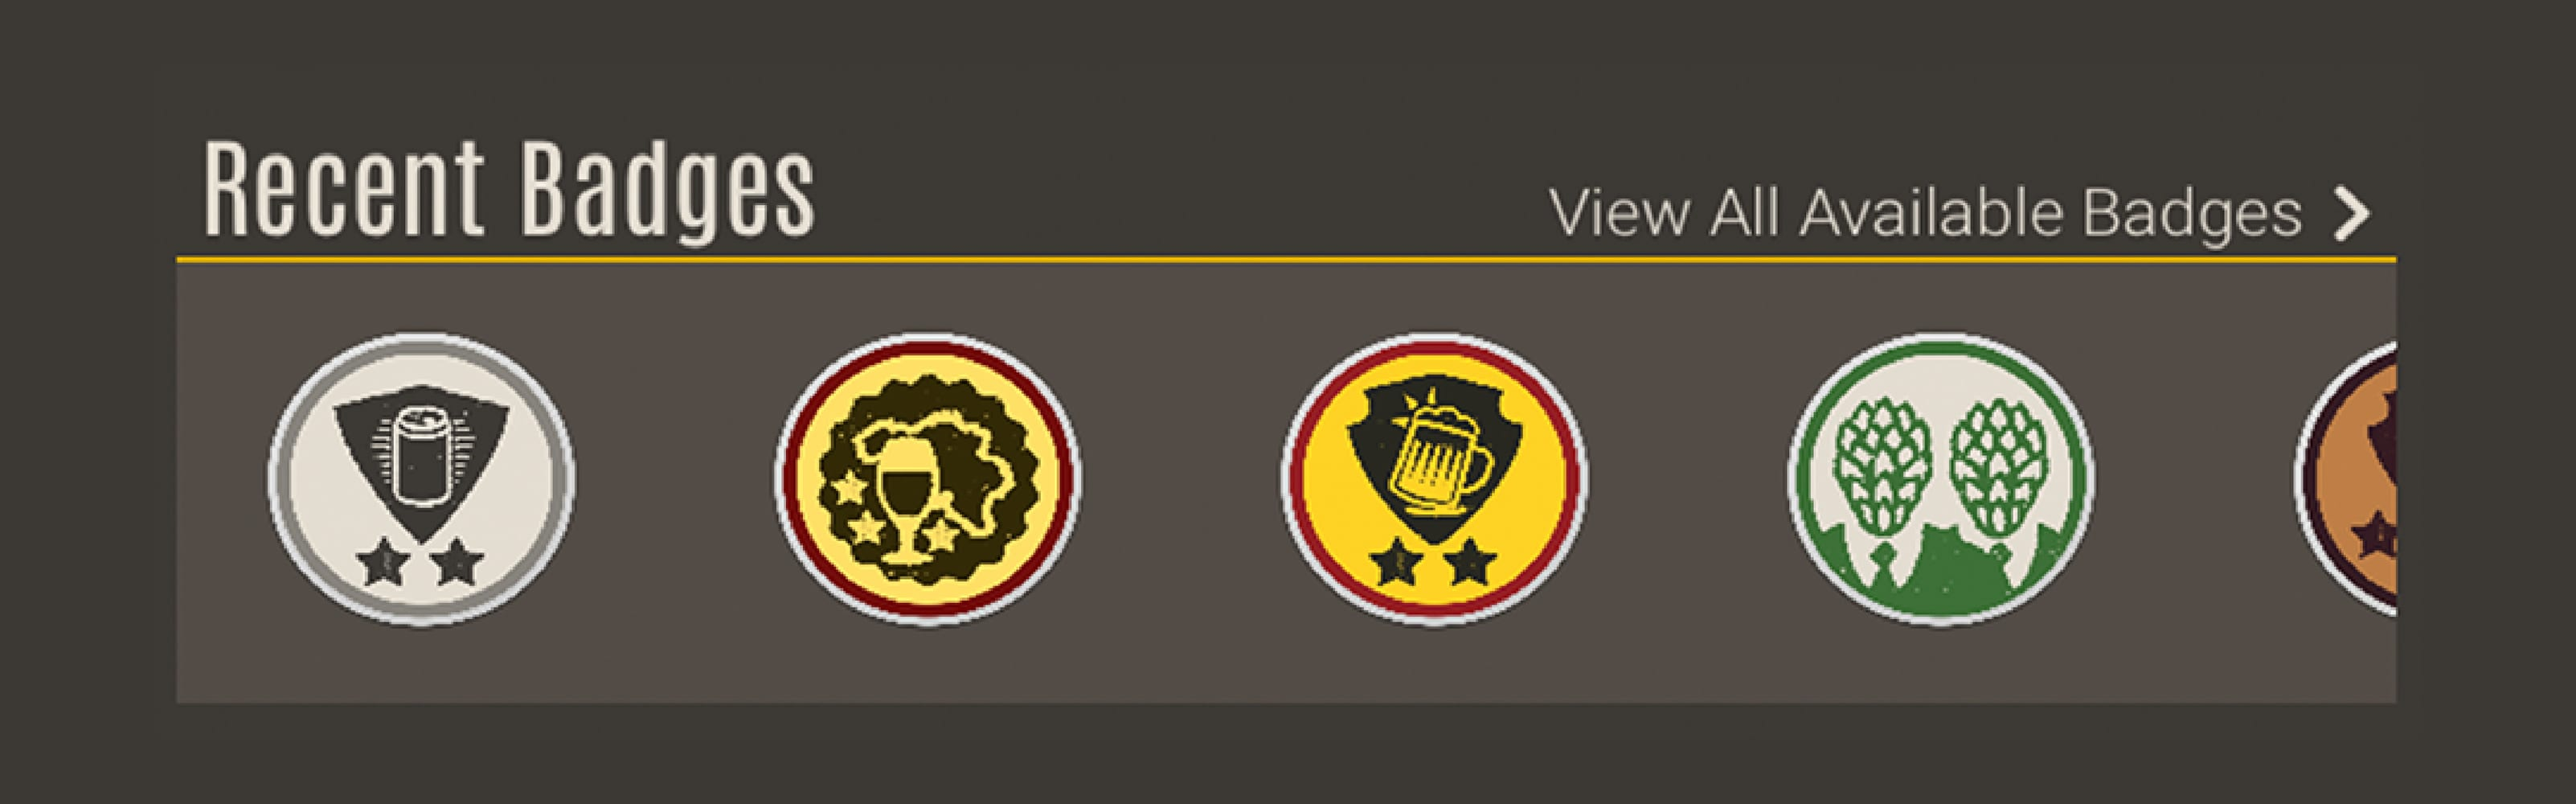 WOB Rewards recent badges screenshot